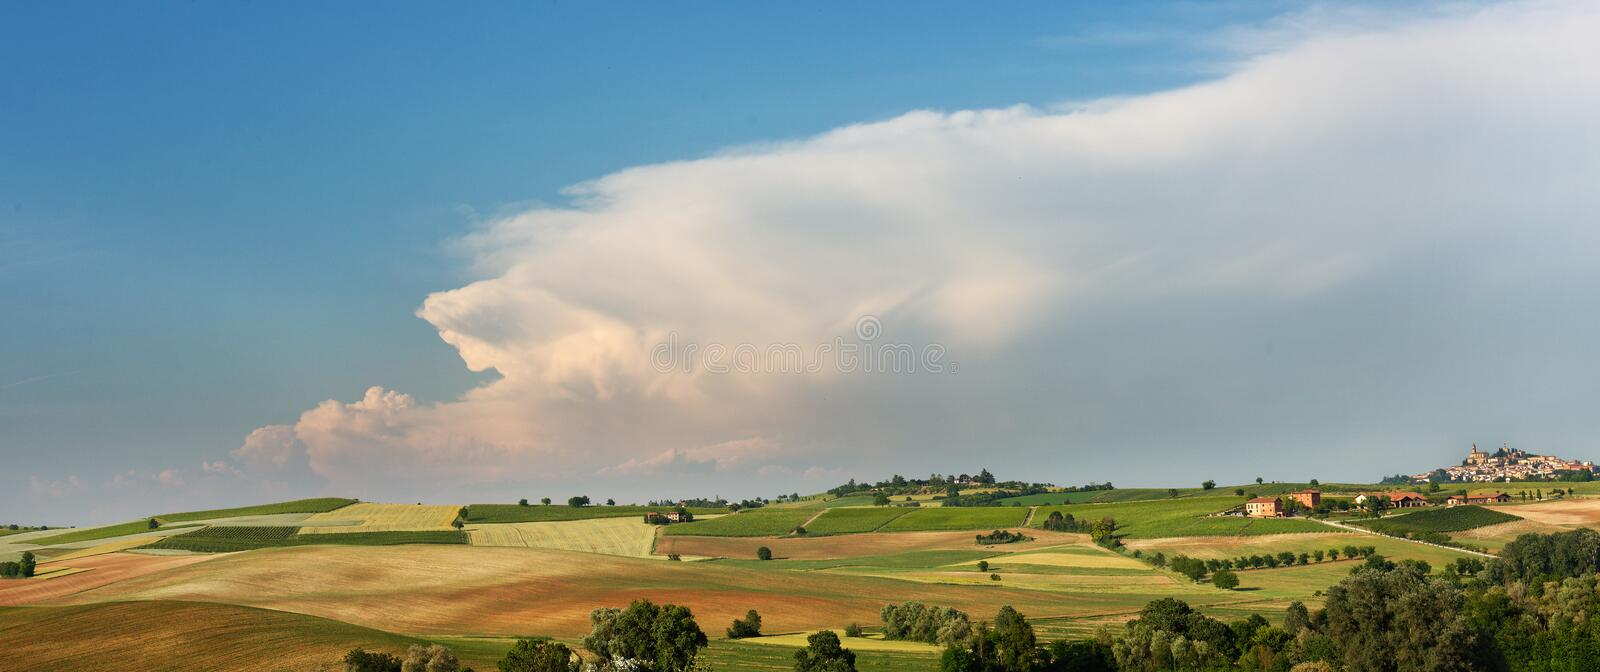 Summer country landscape in Monferrato, Piemonte, near Moncalvo, fields, hills and clouds stock photos